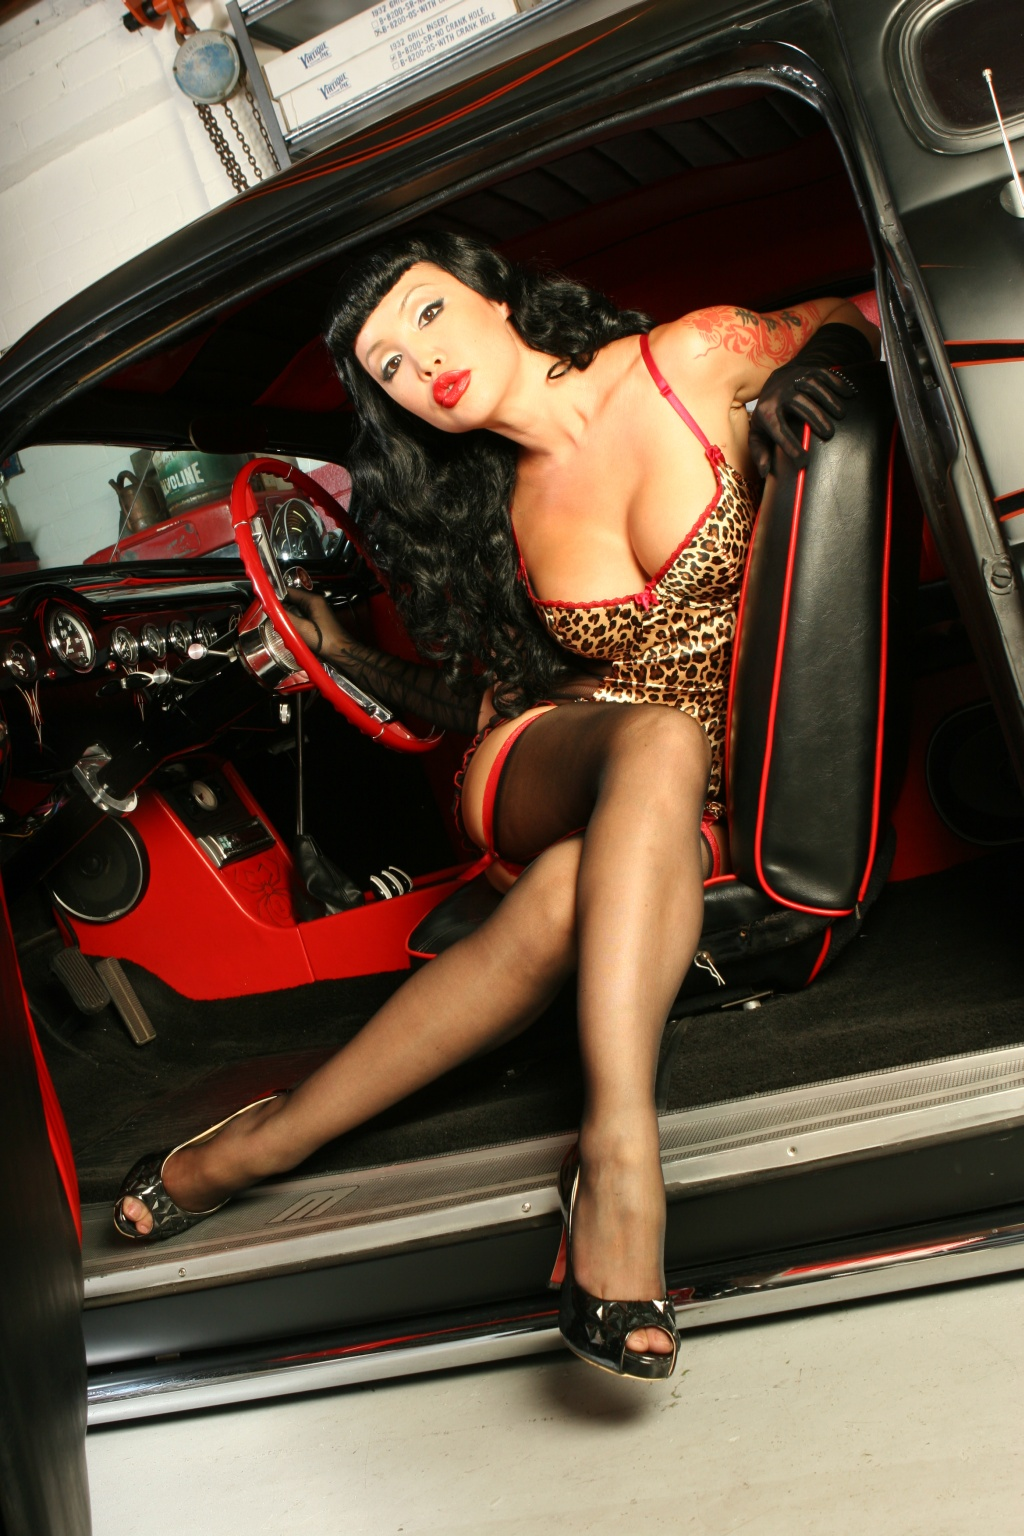 sexy pinup girl masuimi max and cool kustom merc it 39 s hot rod pinups. Black Bedroom Furniture Sets. Home Design Ideas